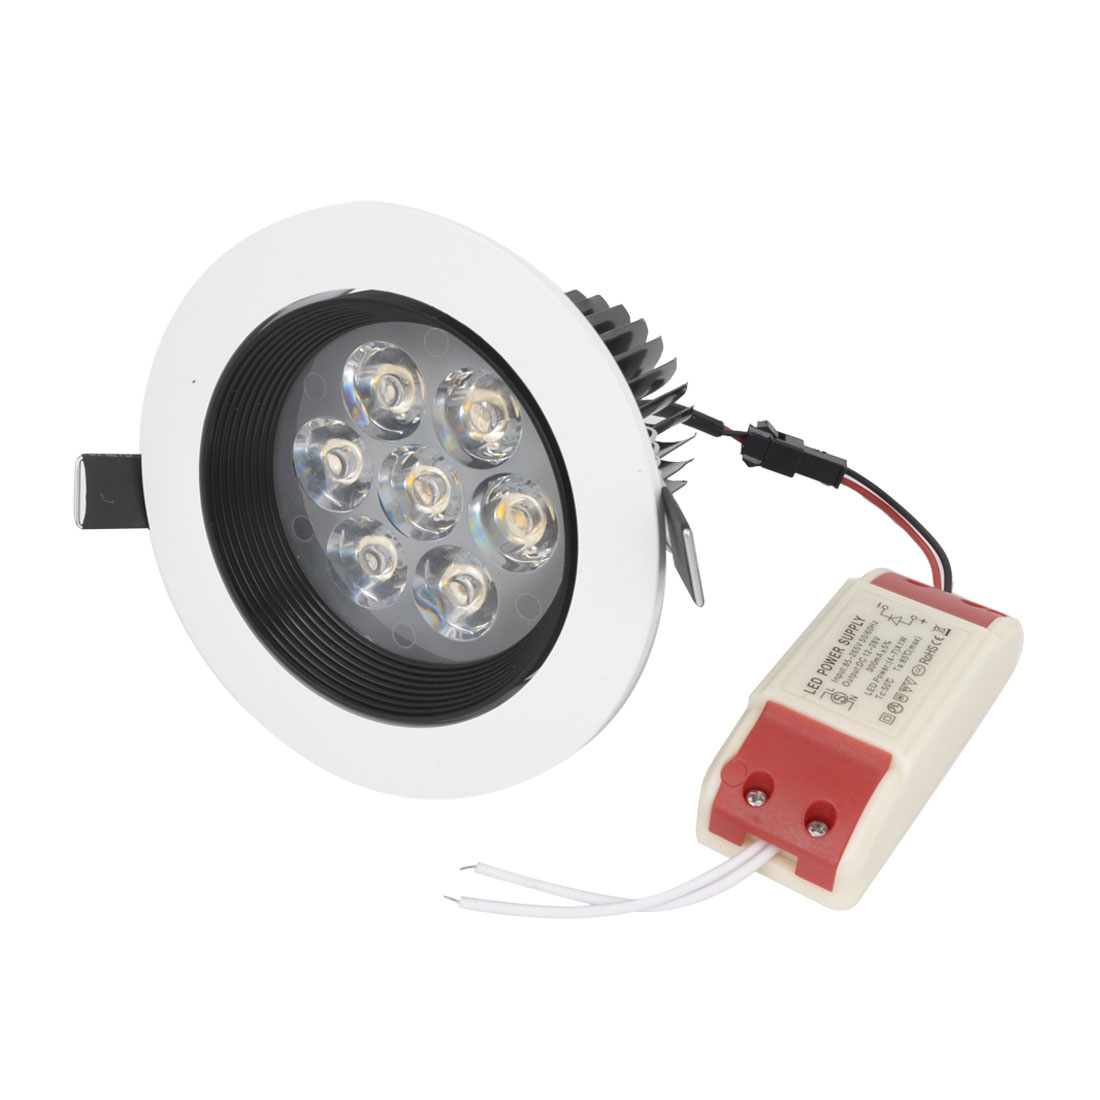 AC 85-265V 7W 7 LEDs Warm White LED Recessed Ceiling Down Light Lamp